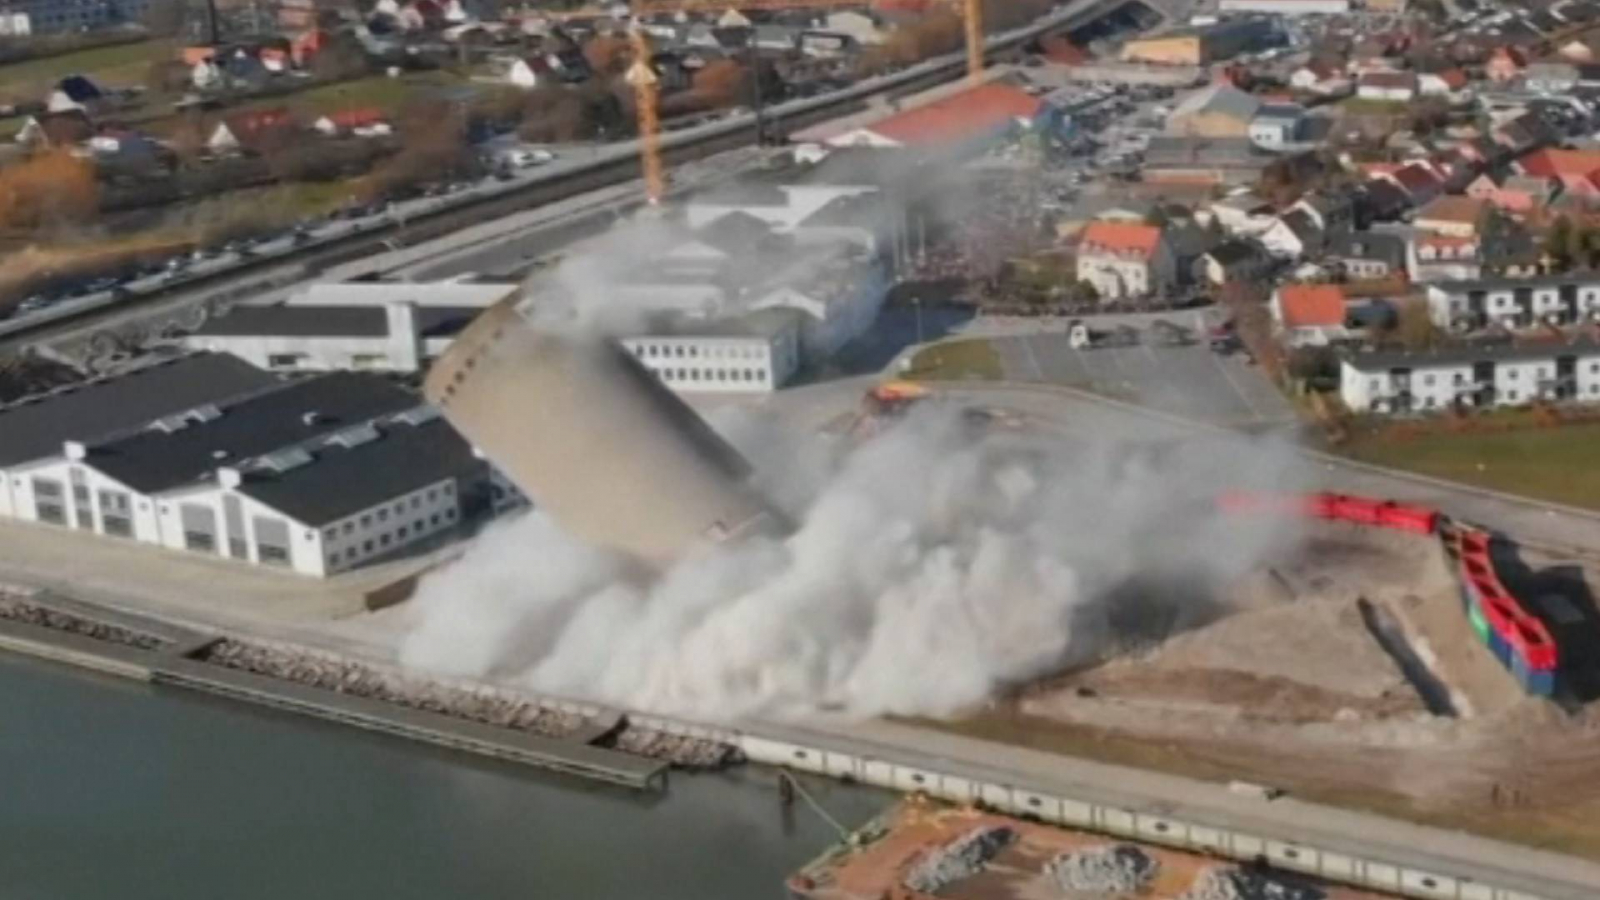 danish-silo-demolition-goes-wrong-crushing-library-and-music-school